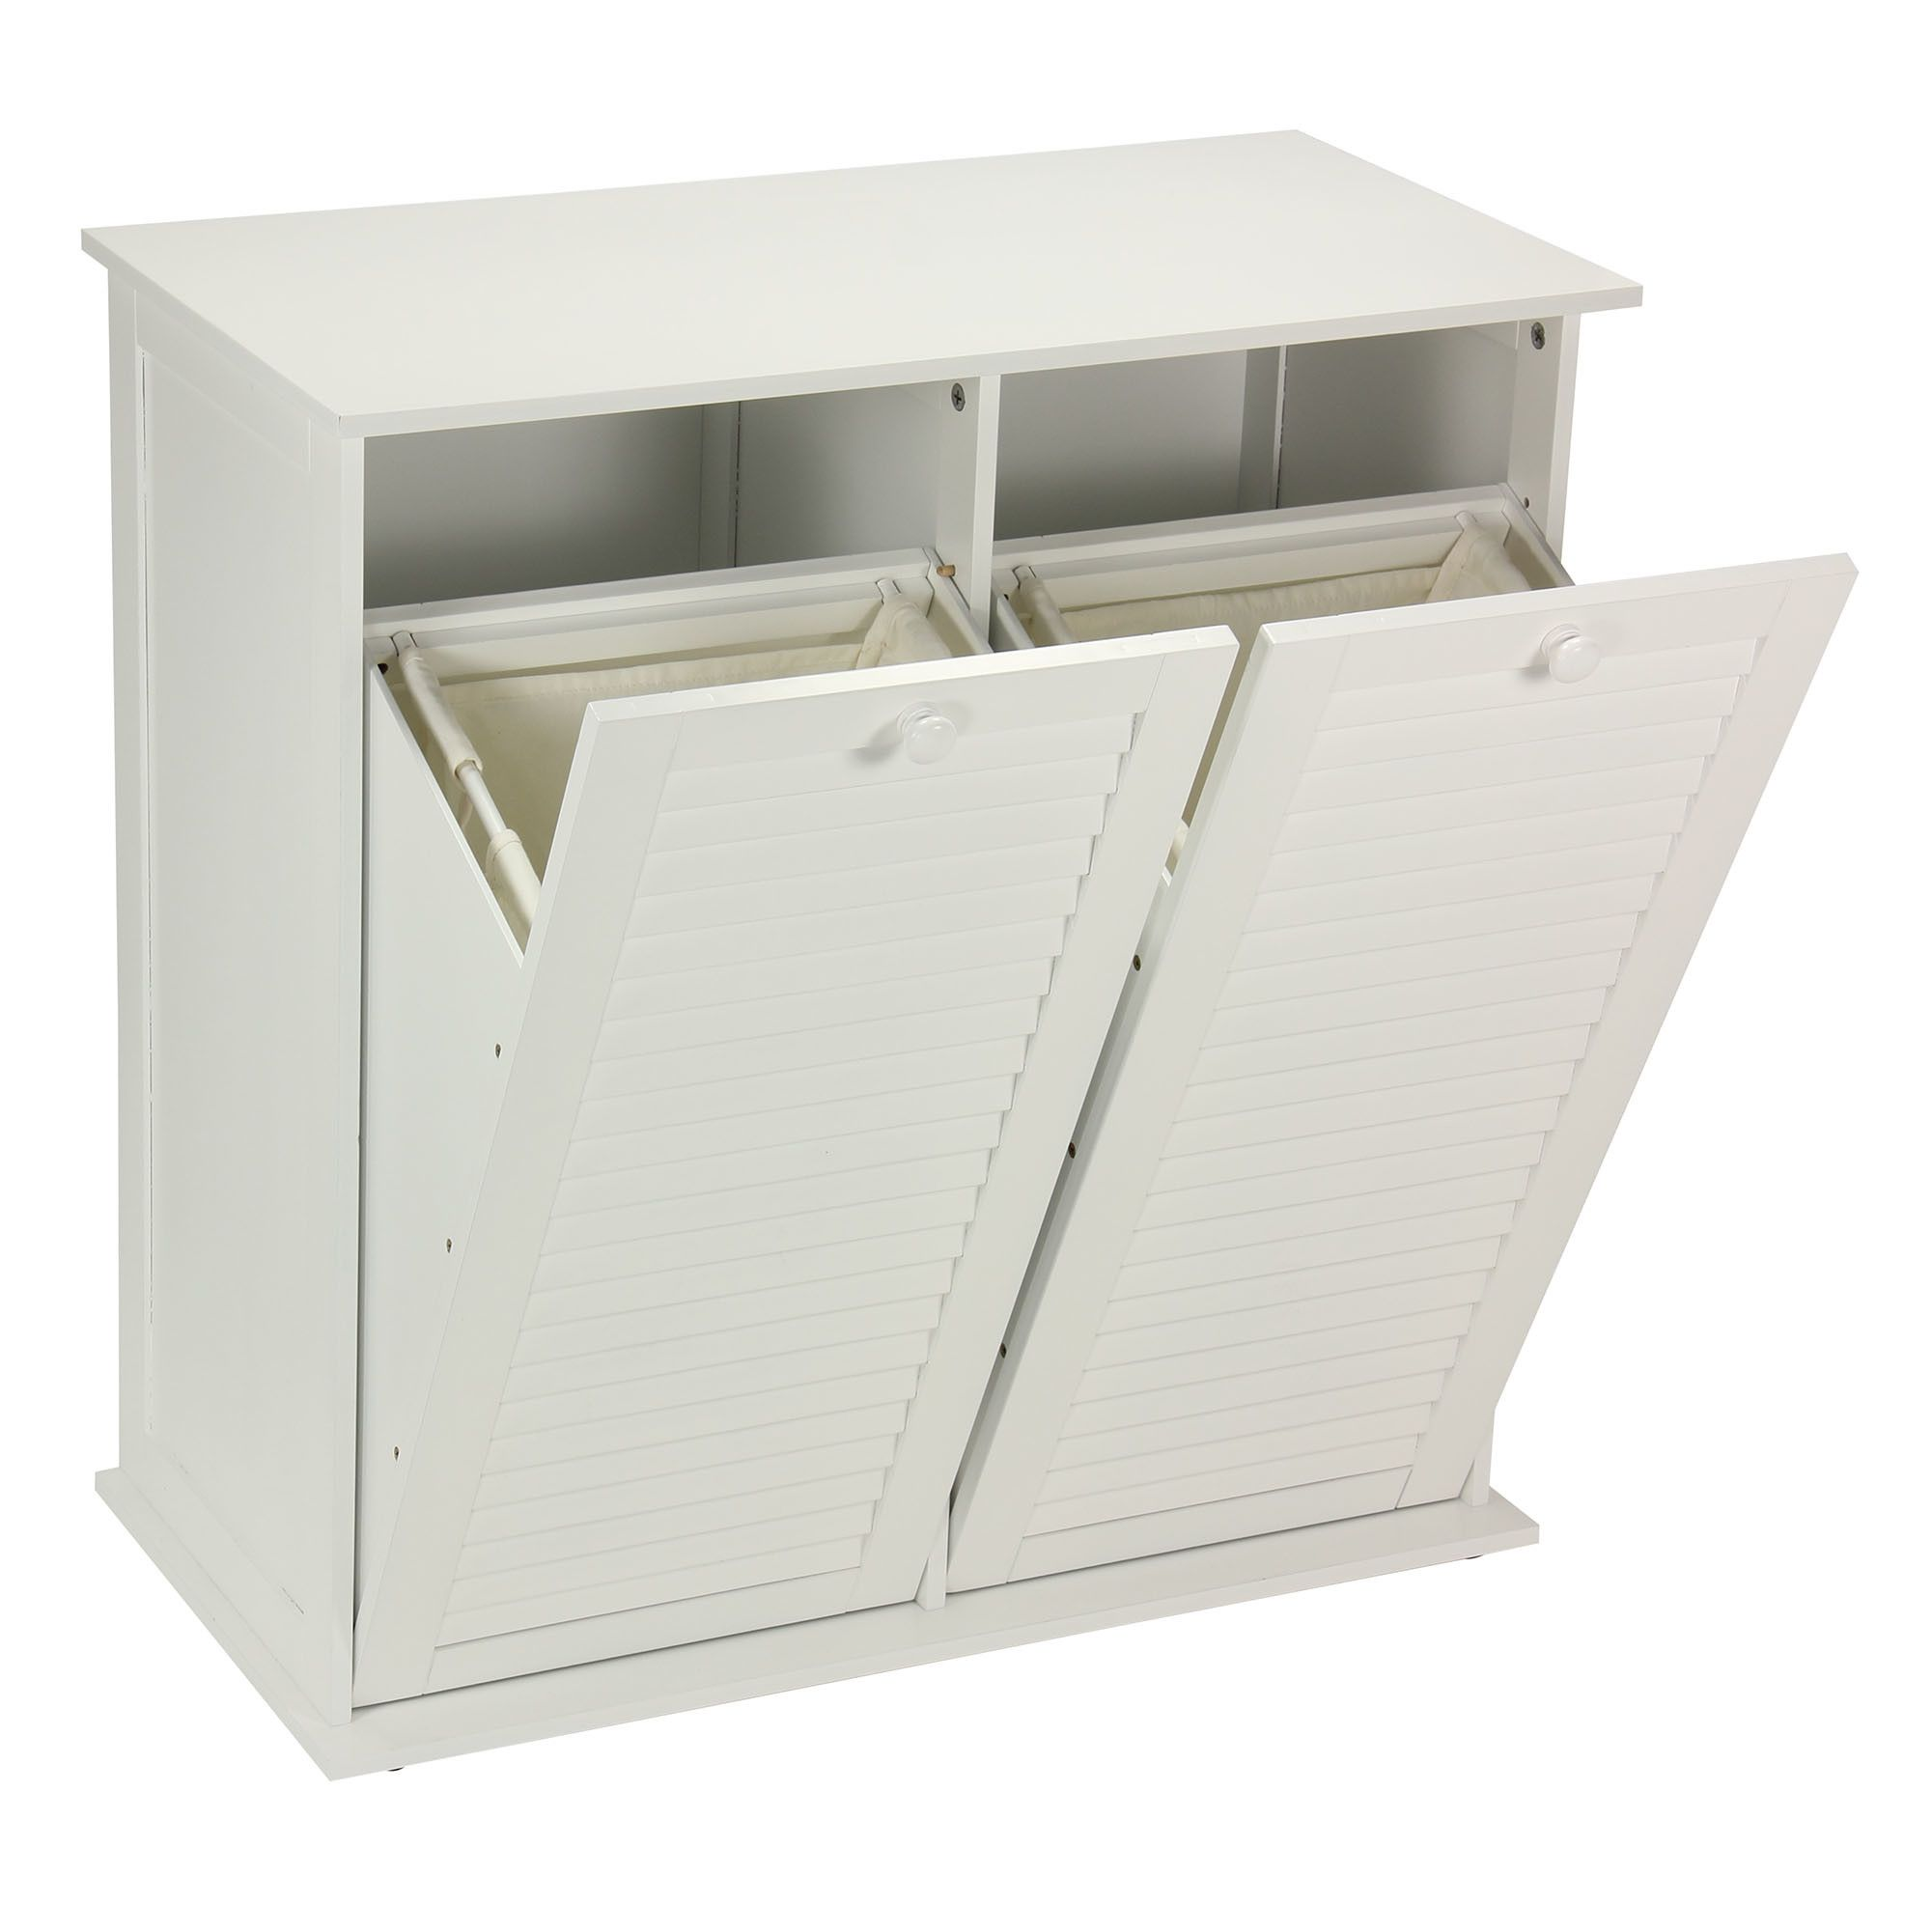 Household Essentials Tilt Out Laundry Sorter Cabinet With Shutter